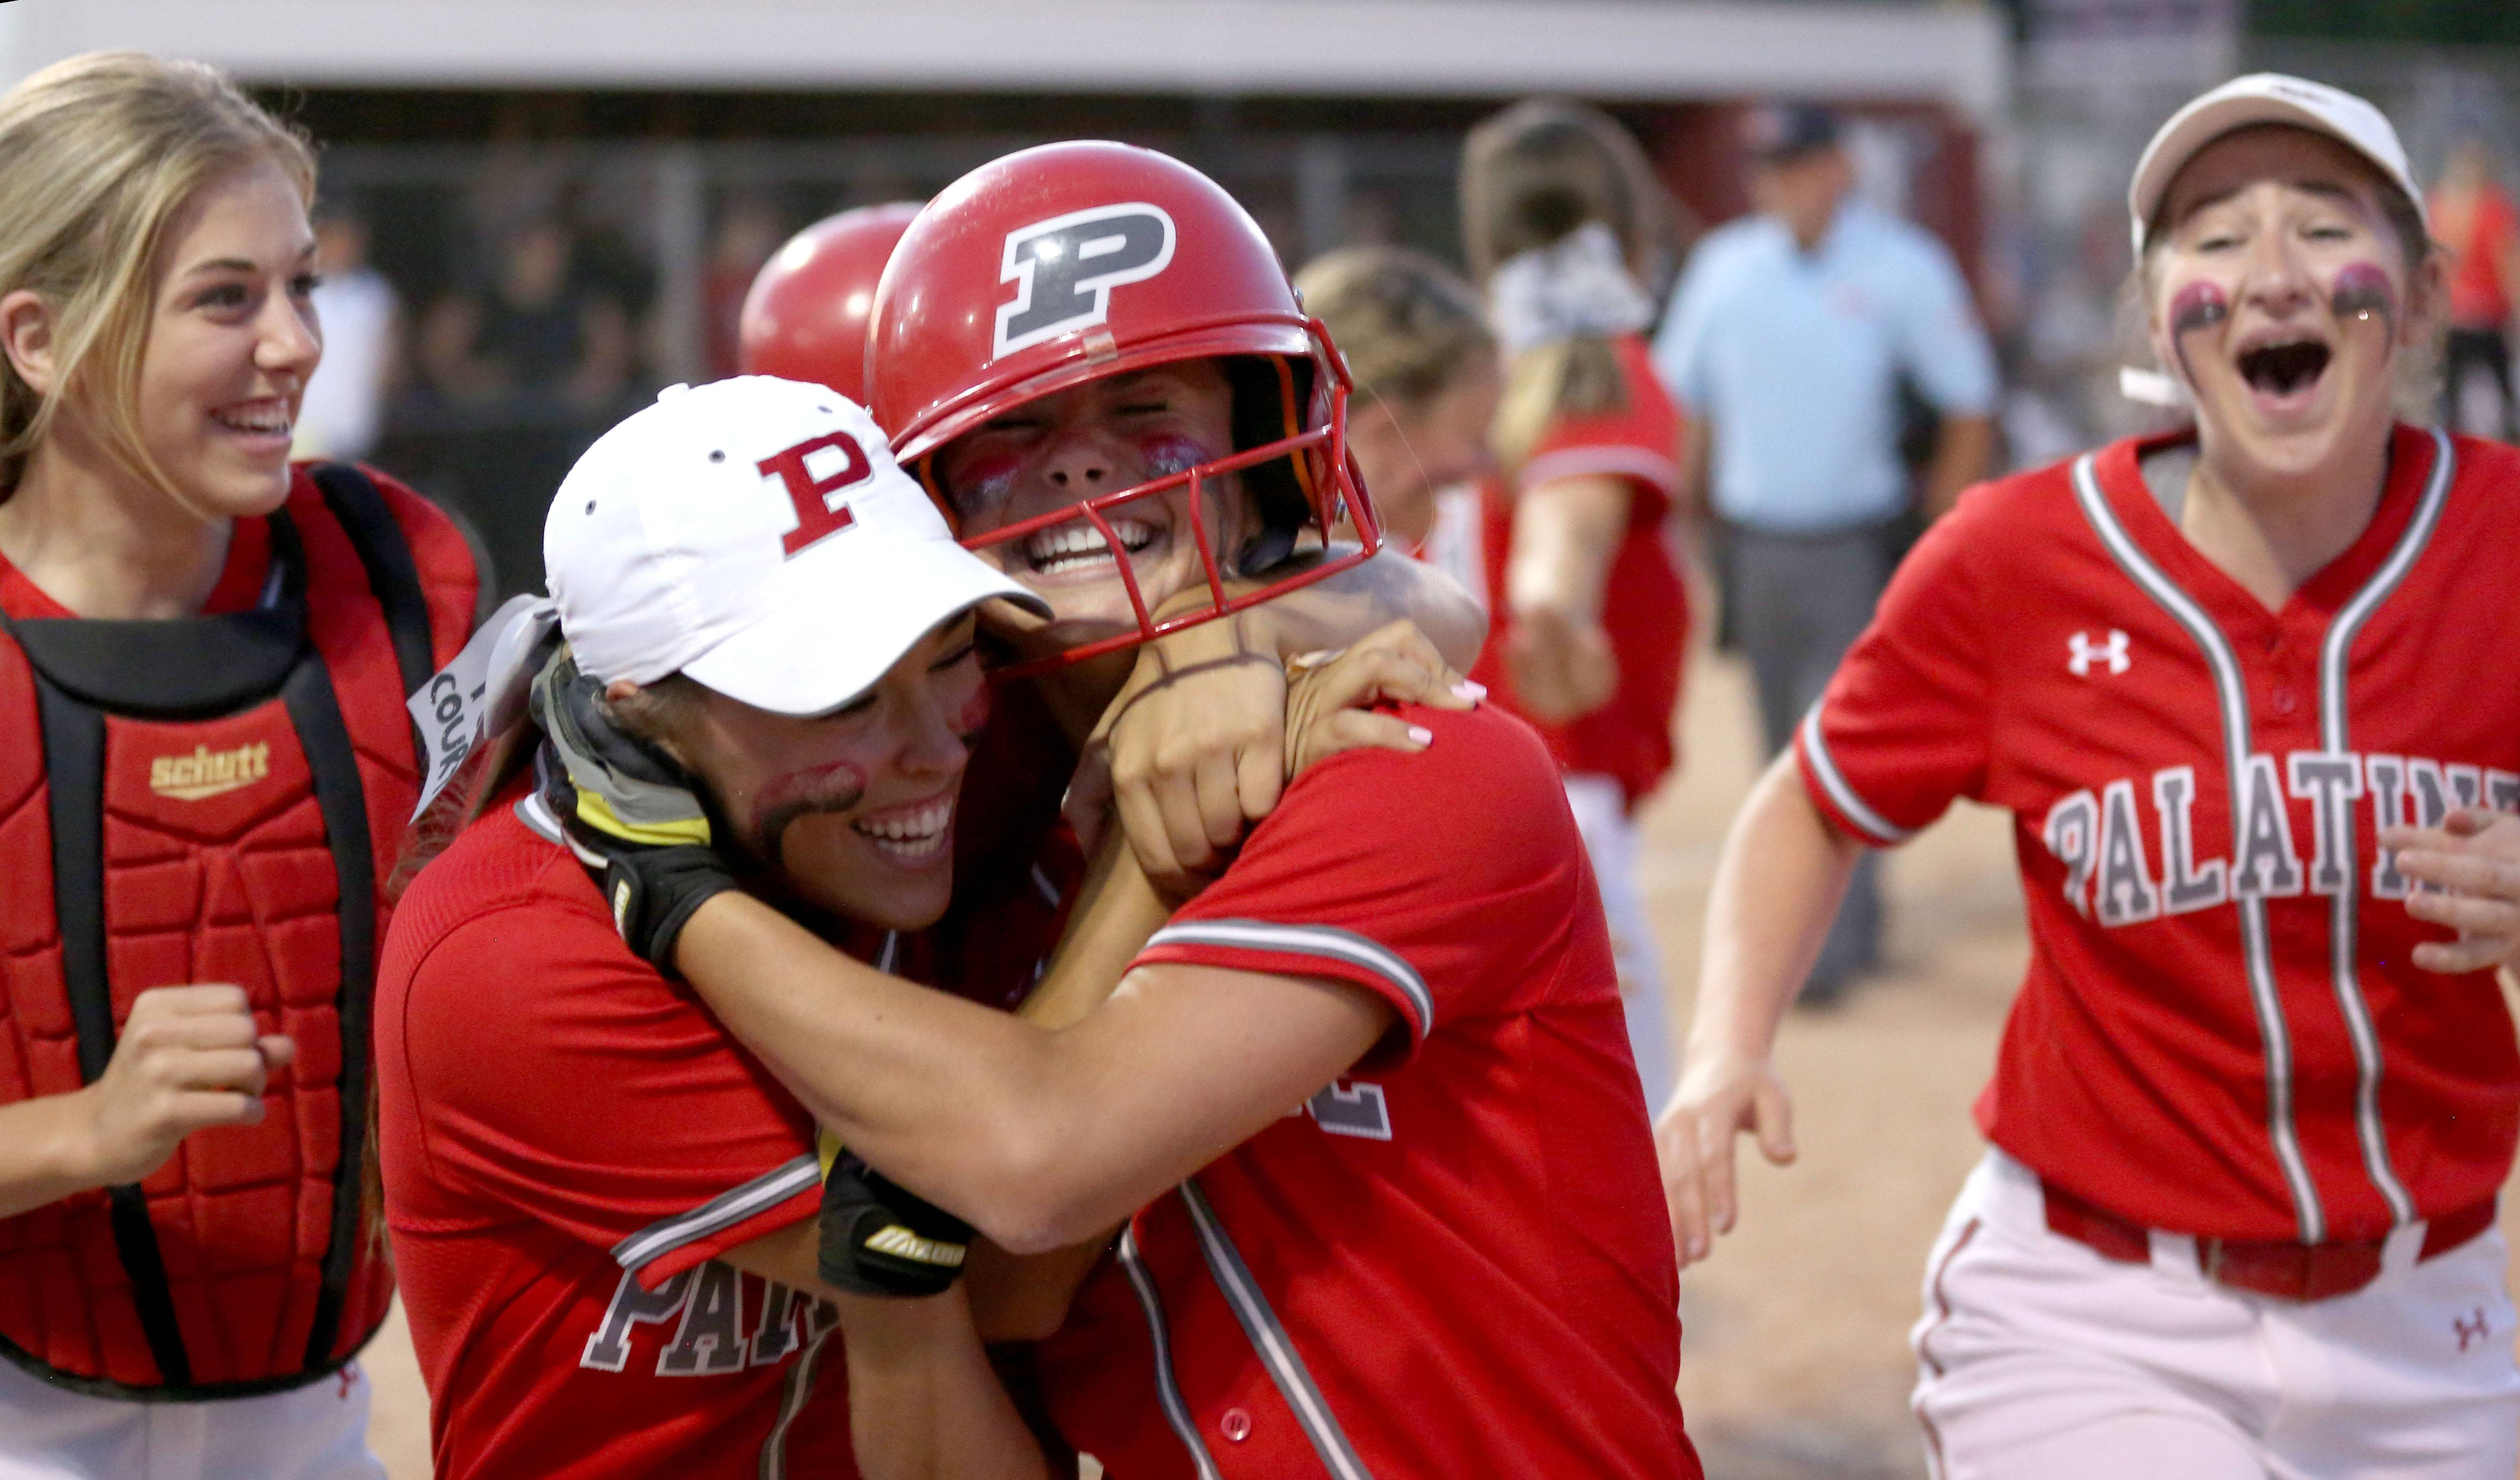 Emily Parrott, center right, is embraced by Brittany Padden after Parrott's 3-run homer in the Class 4A supersectional at Barrington on Monday night.